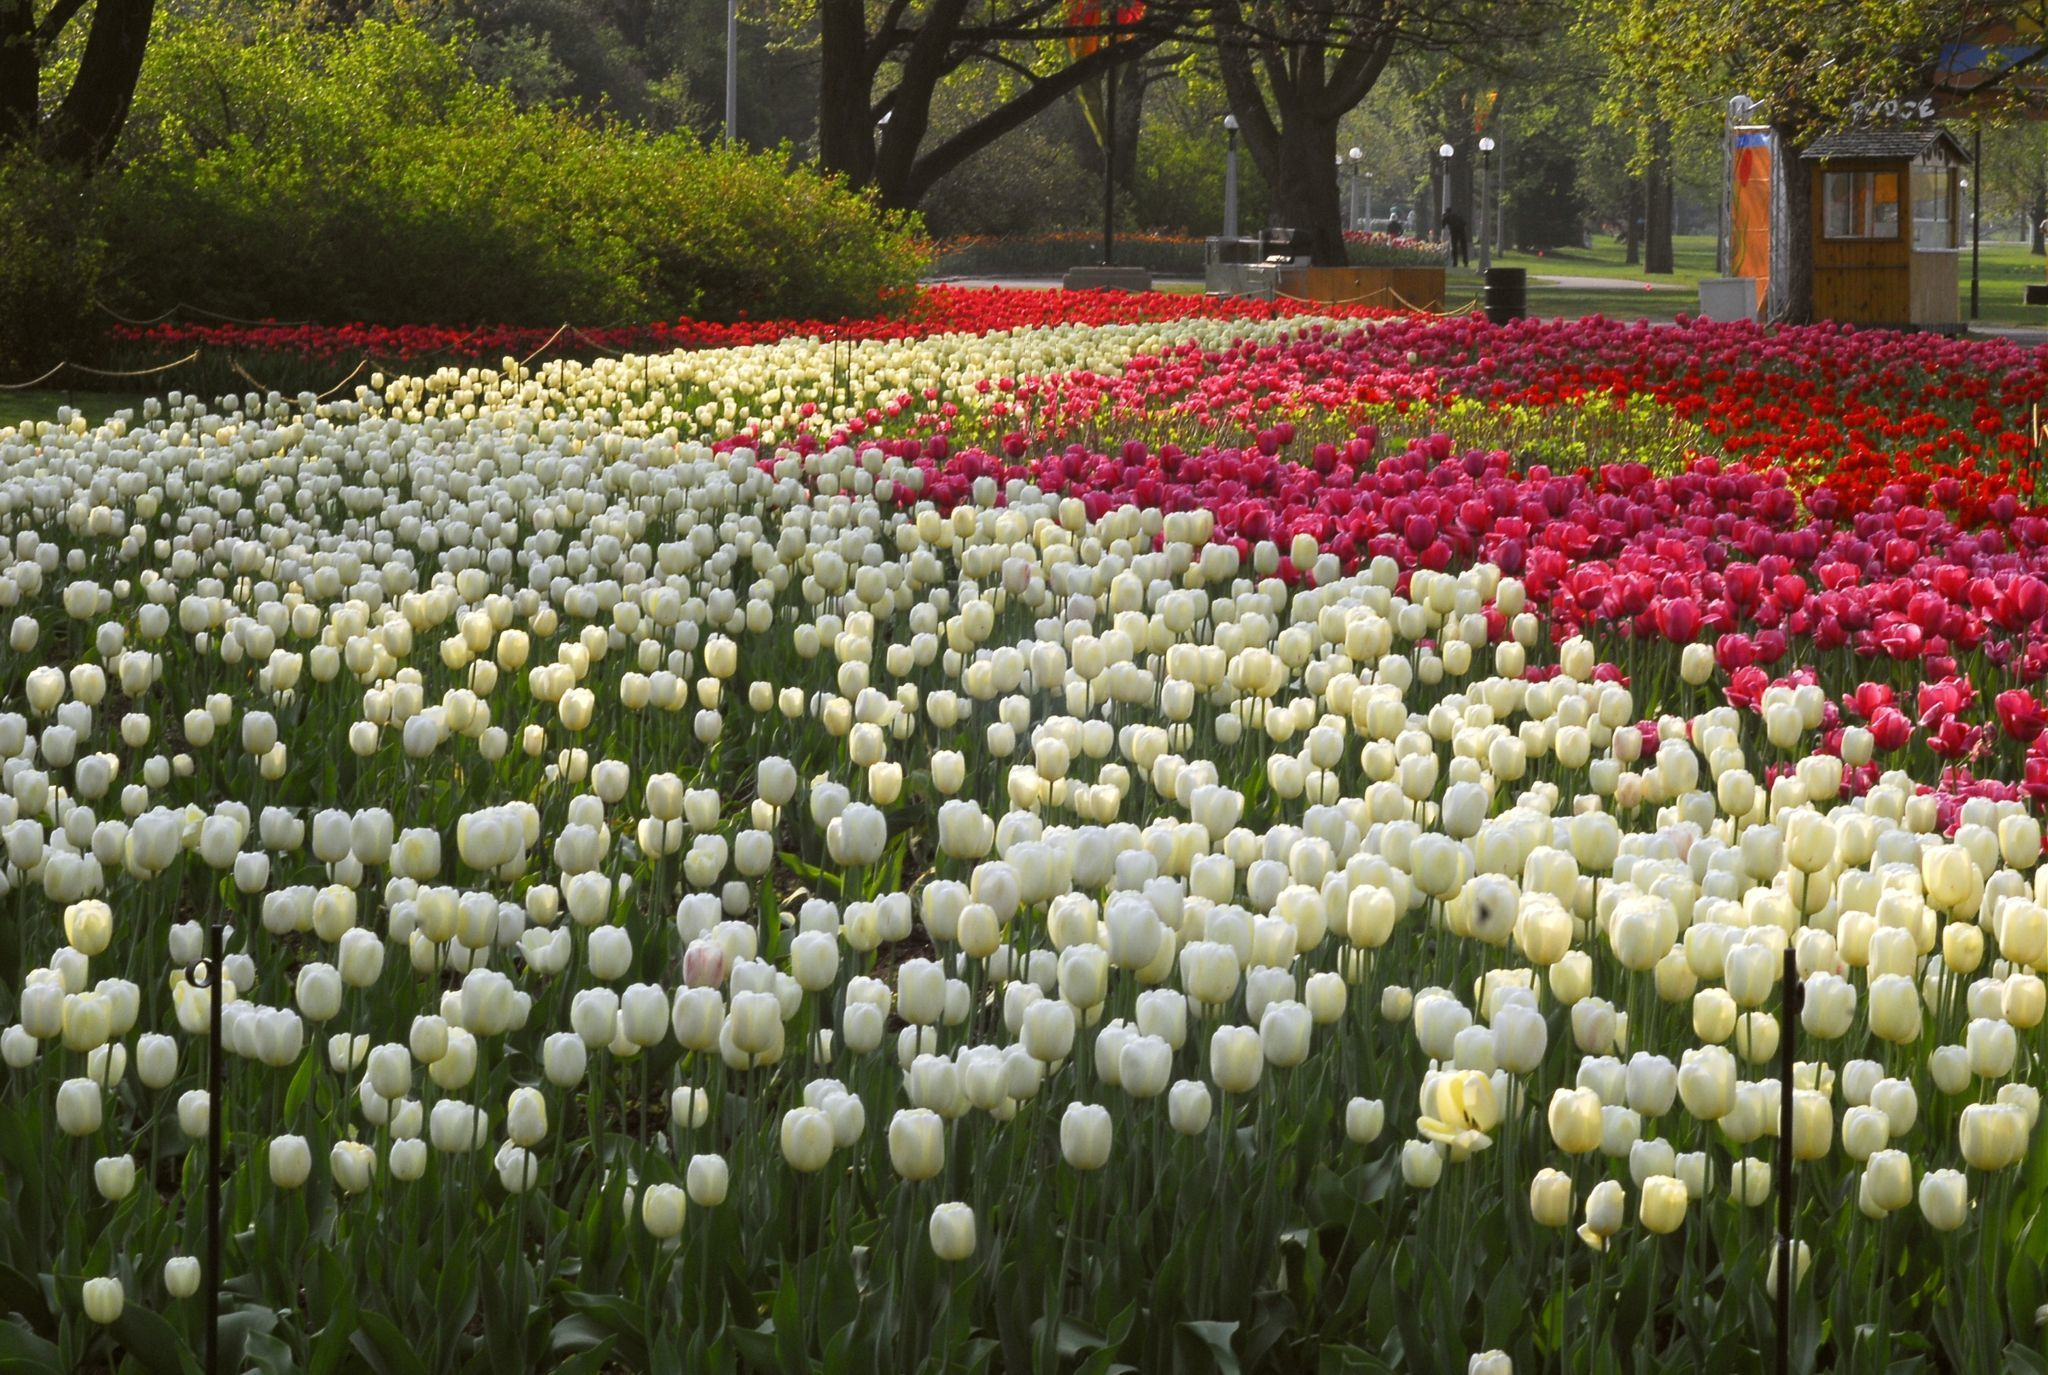 Large and very packed tulip beds